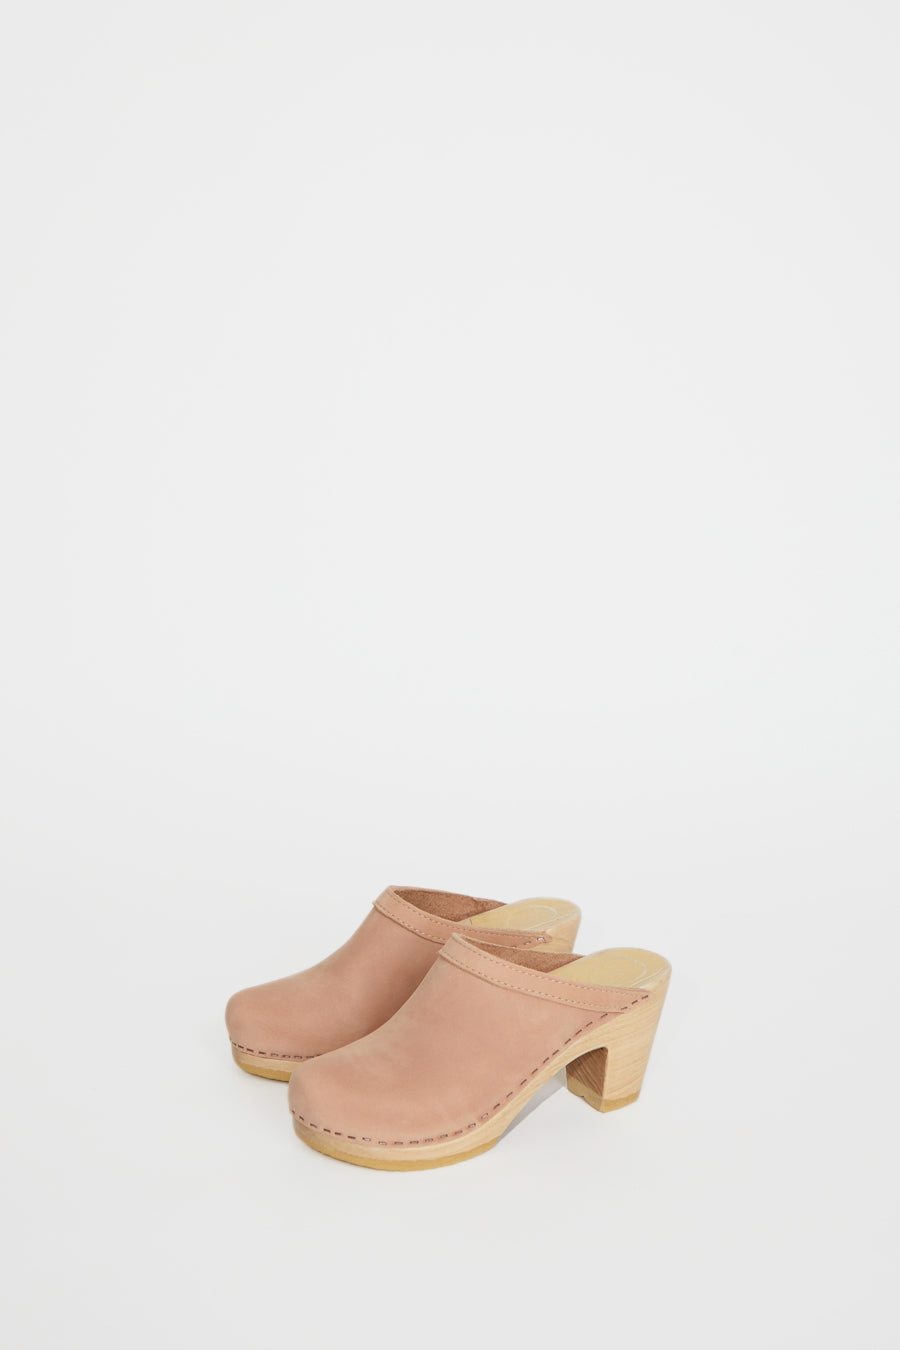 No.6 Old School Clog on High Heel in Pink Sand